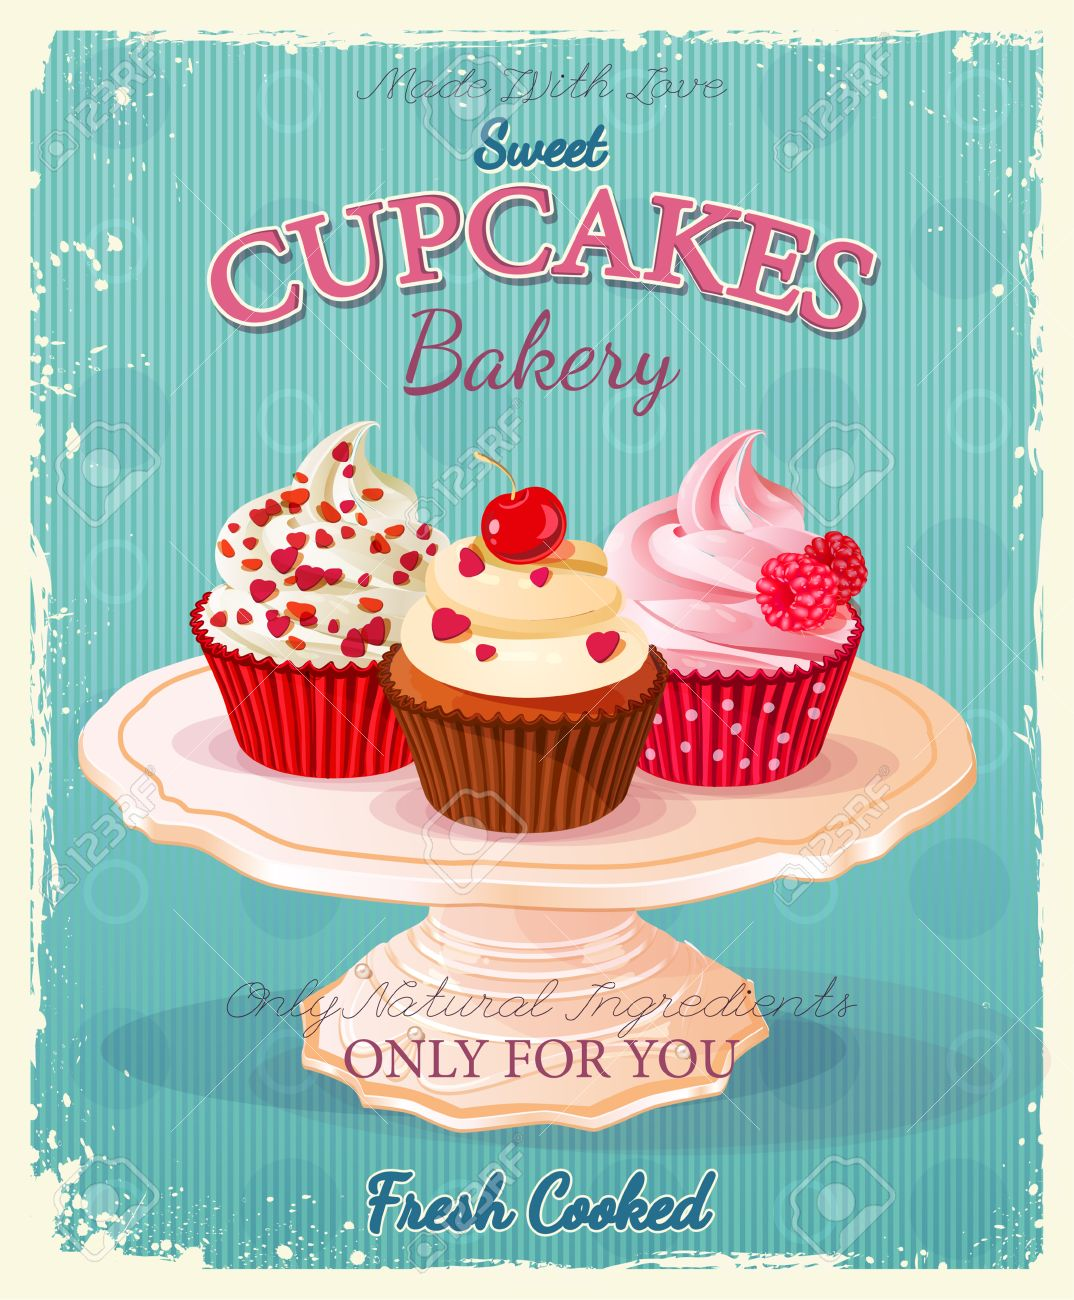 Cupcakes. Poster In Vintage Style. Wedding And Birthday Sweets ...